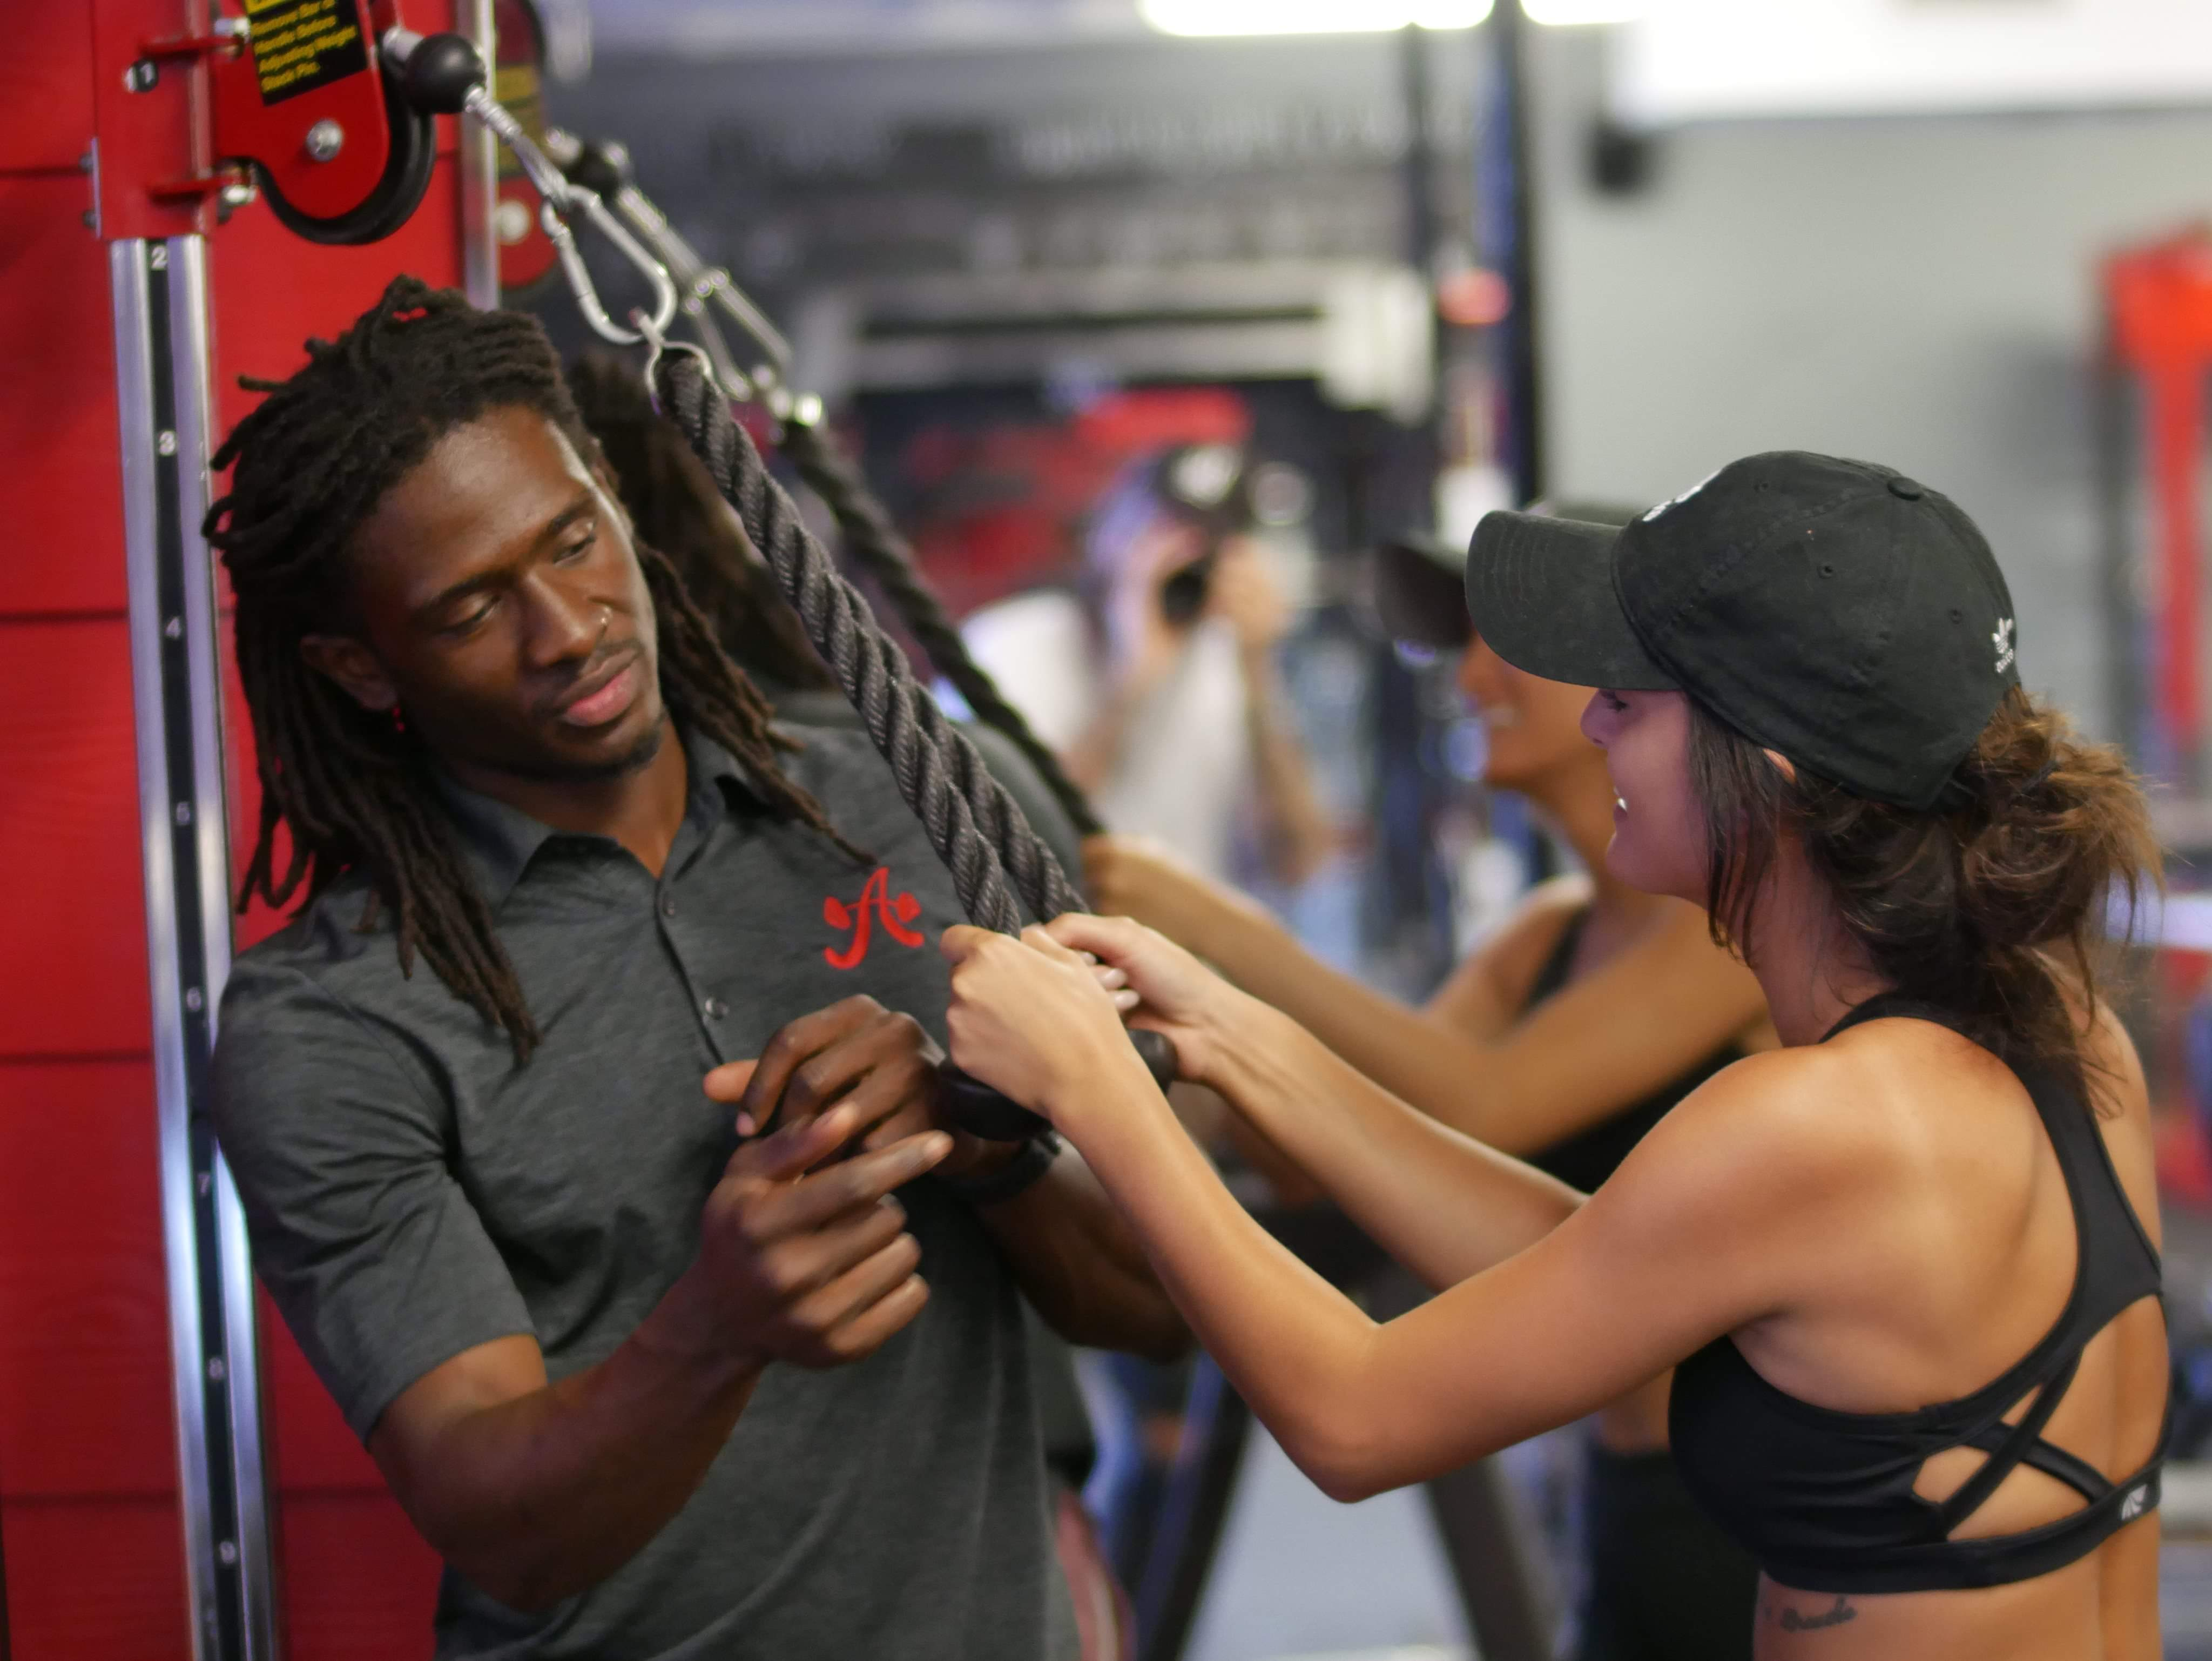 Certified personal trainer, Darryl Payne, with an Austin Simply Fit client